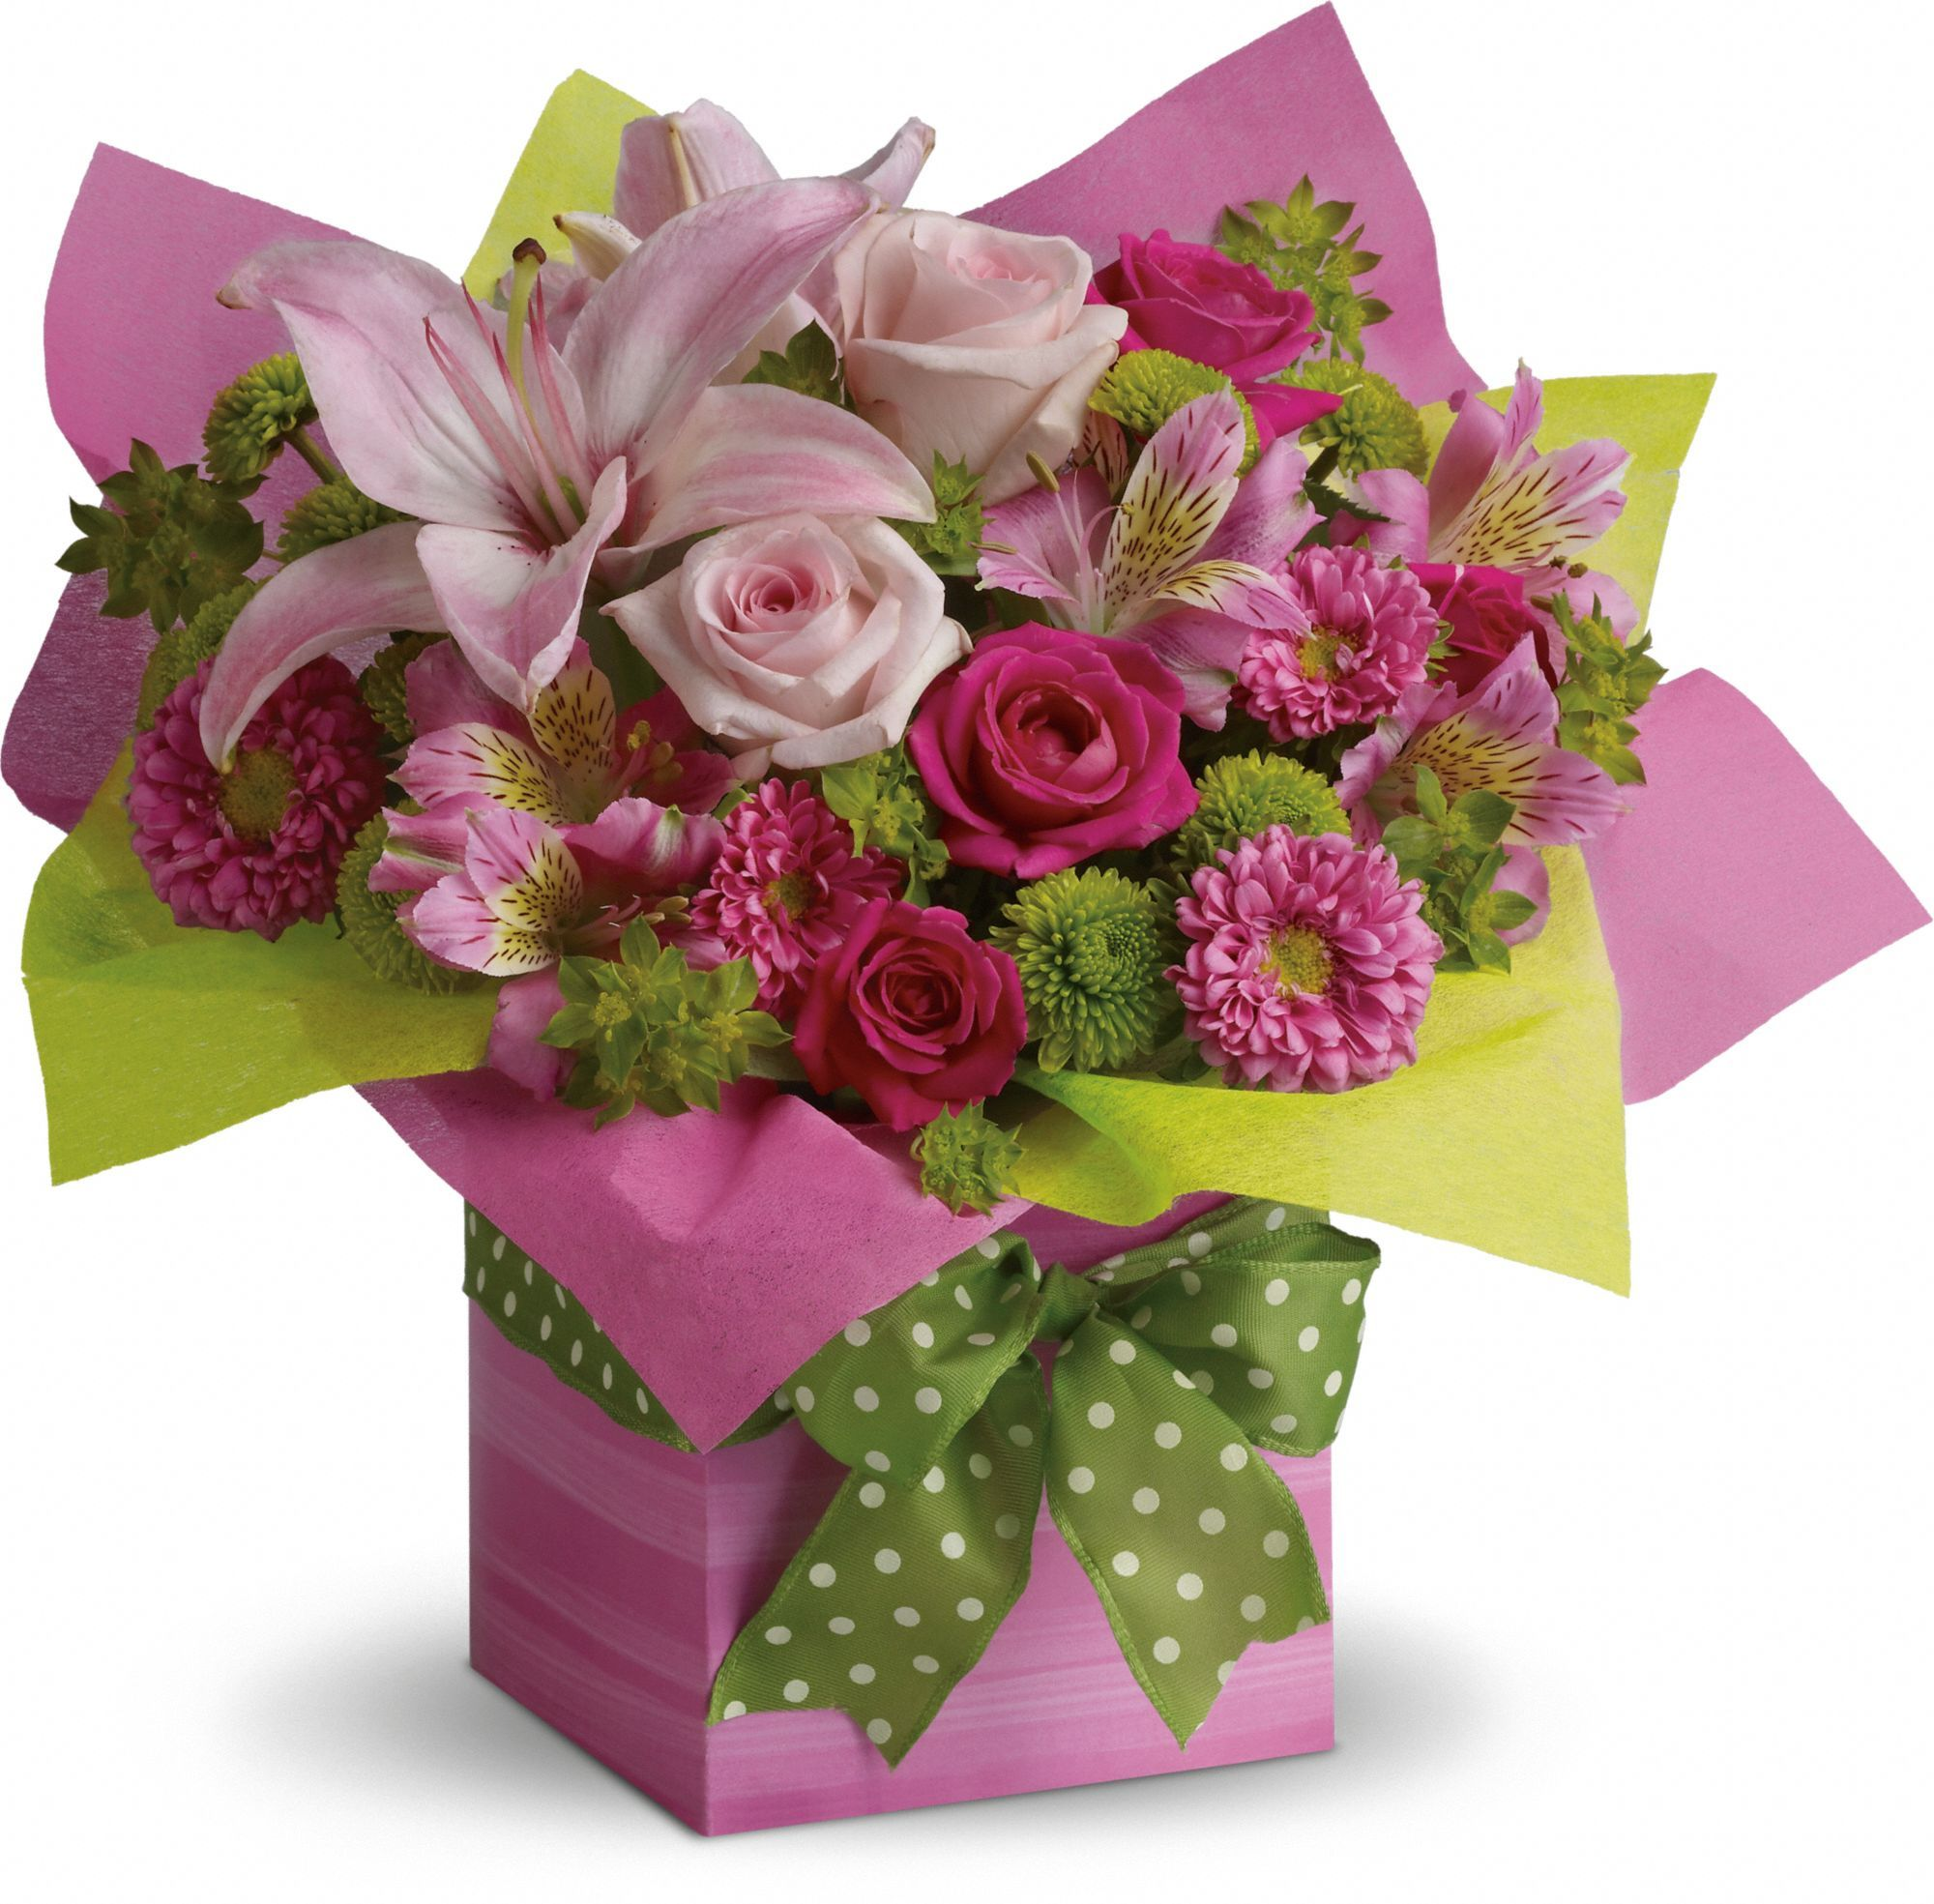 Telefloras pretty pink present flowers and butterflies 3 telefloras pretty pink present izmirmasajfo